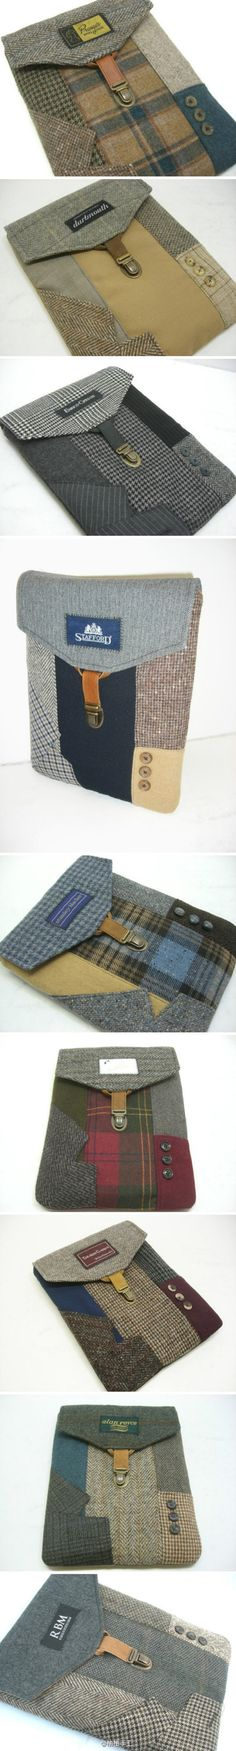 For inspiration--repurposing old clothing. IPAD bag use by males